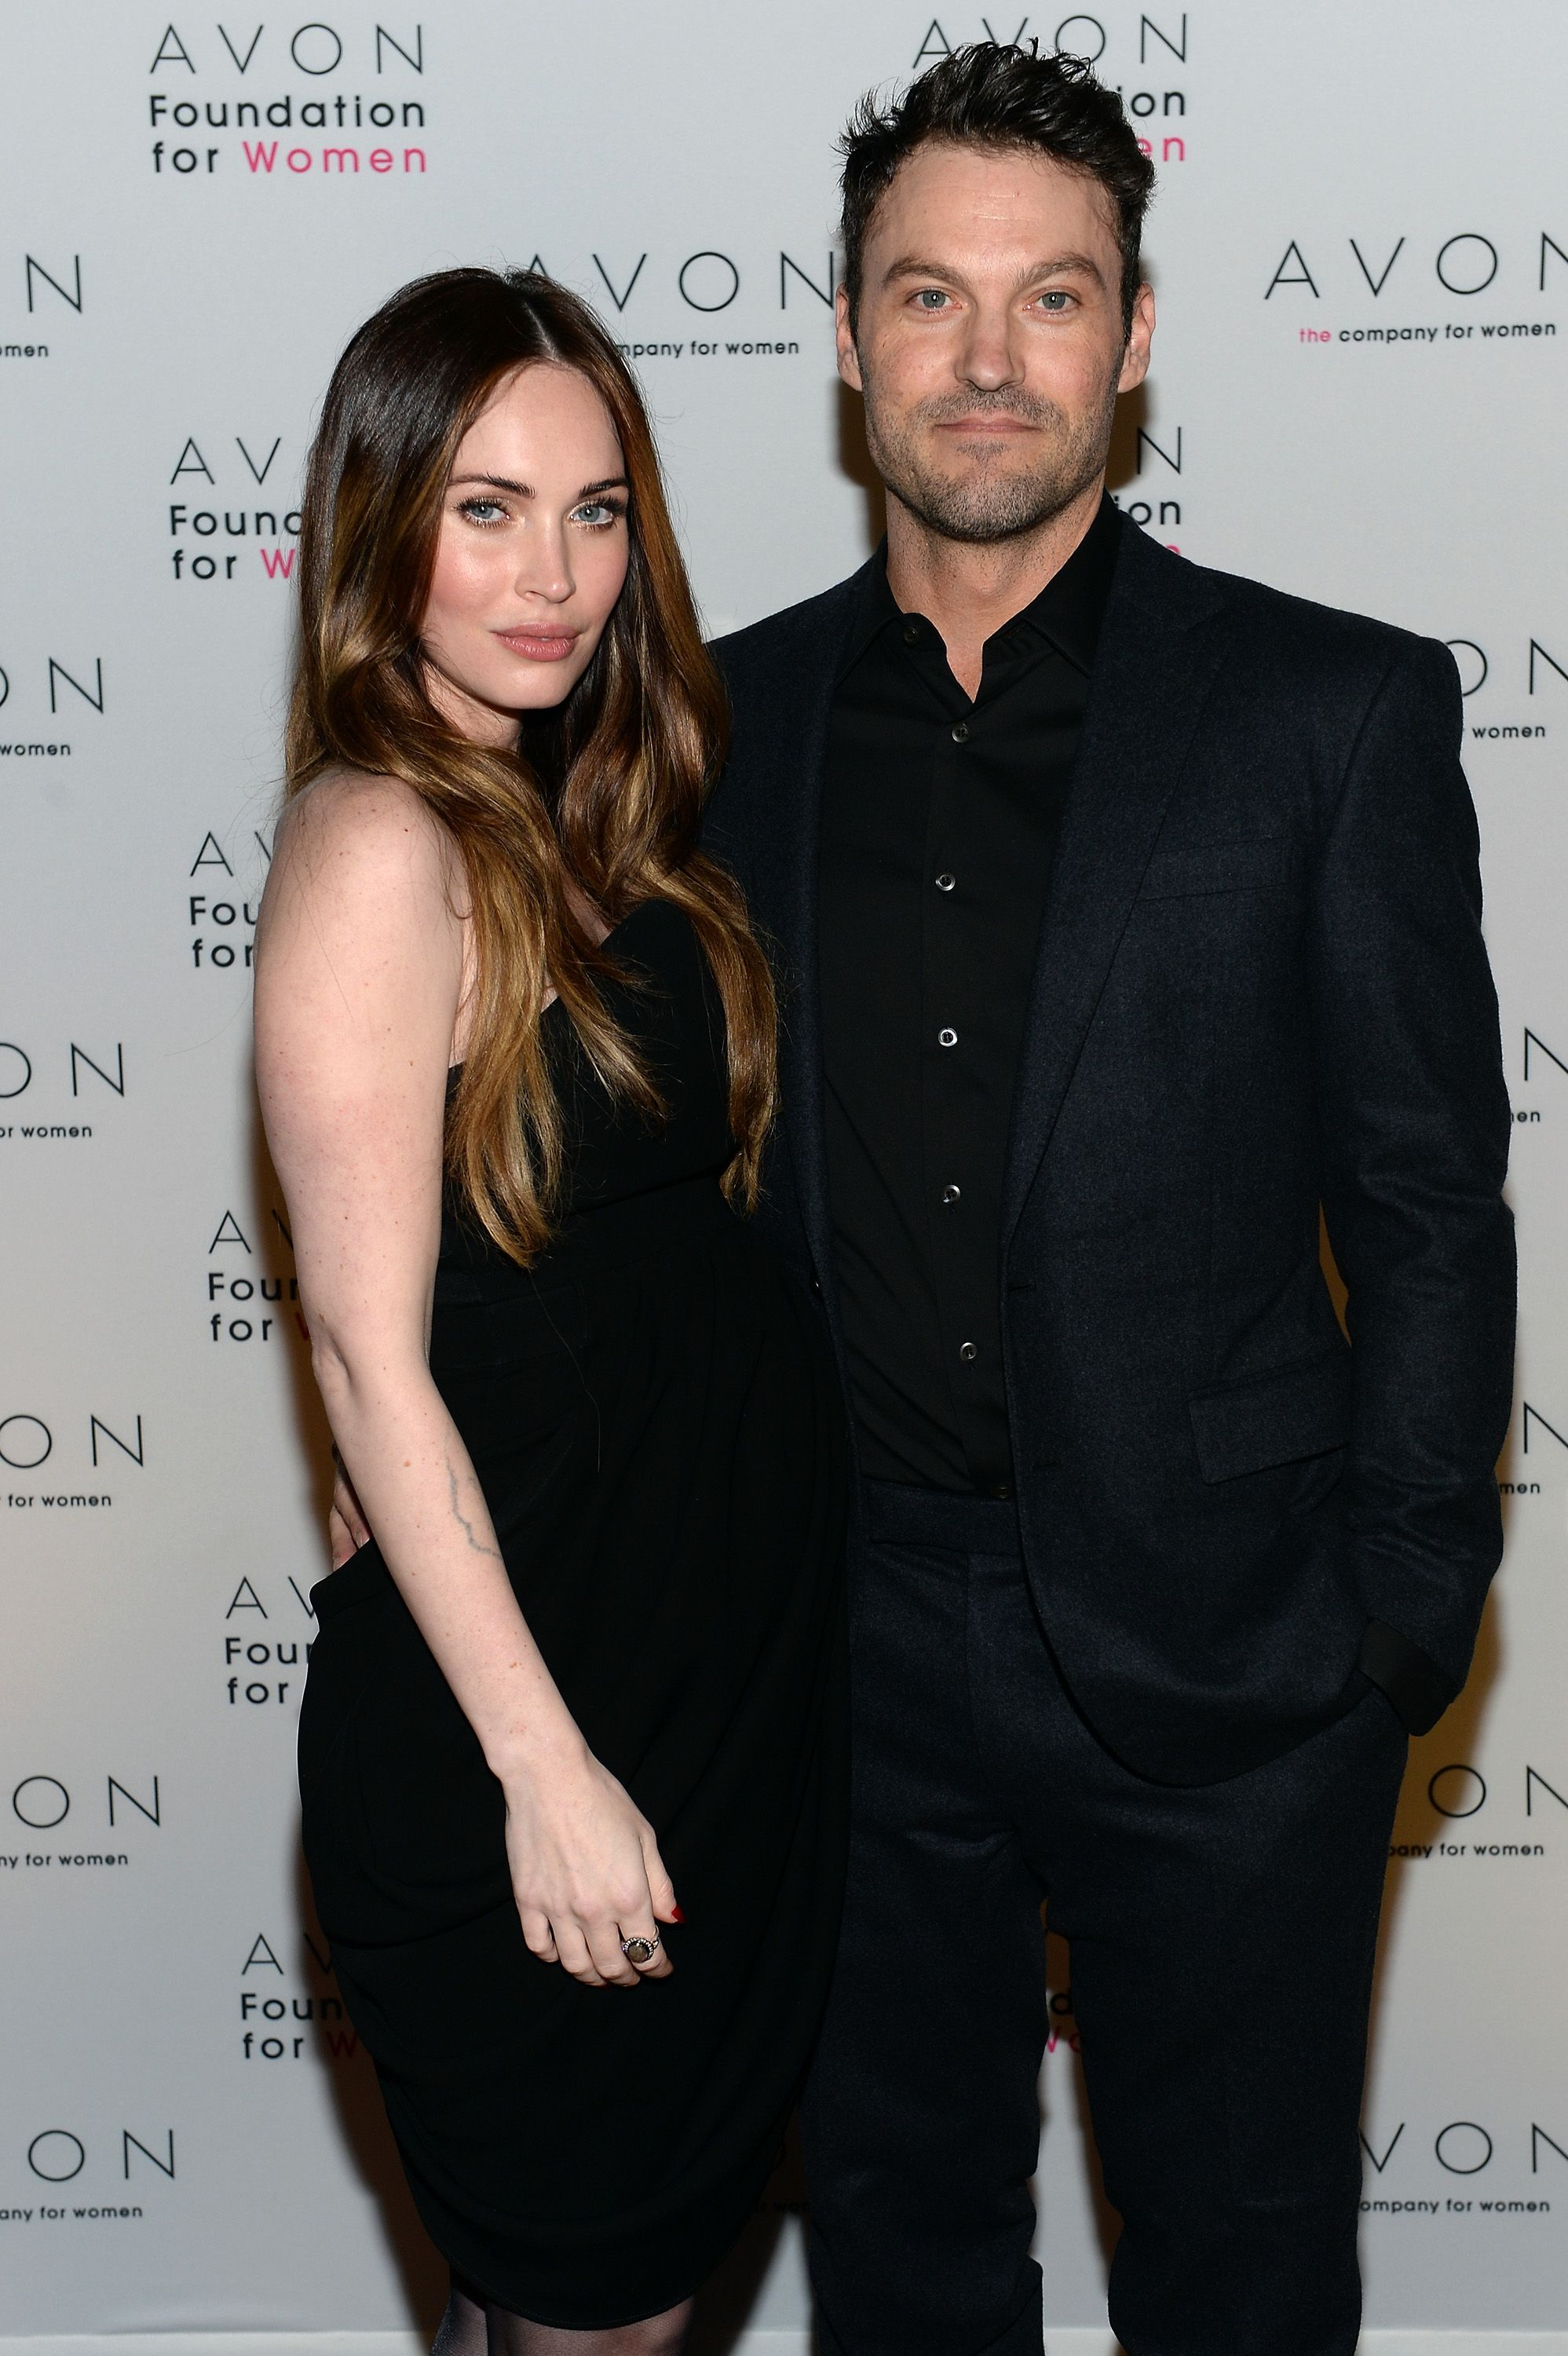 Megan Fox and Brian Austin Green at The Morgan Library & Museum on November 21, 2013 | Photo: Getty Images